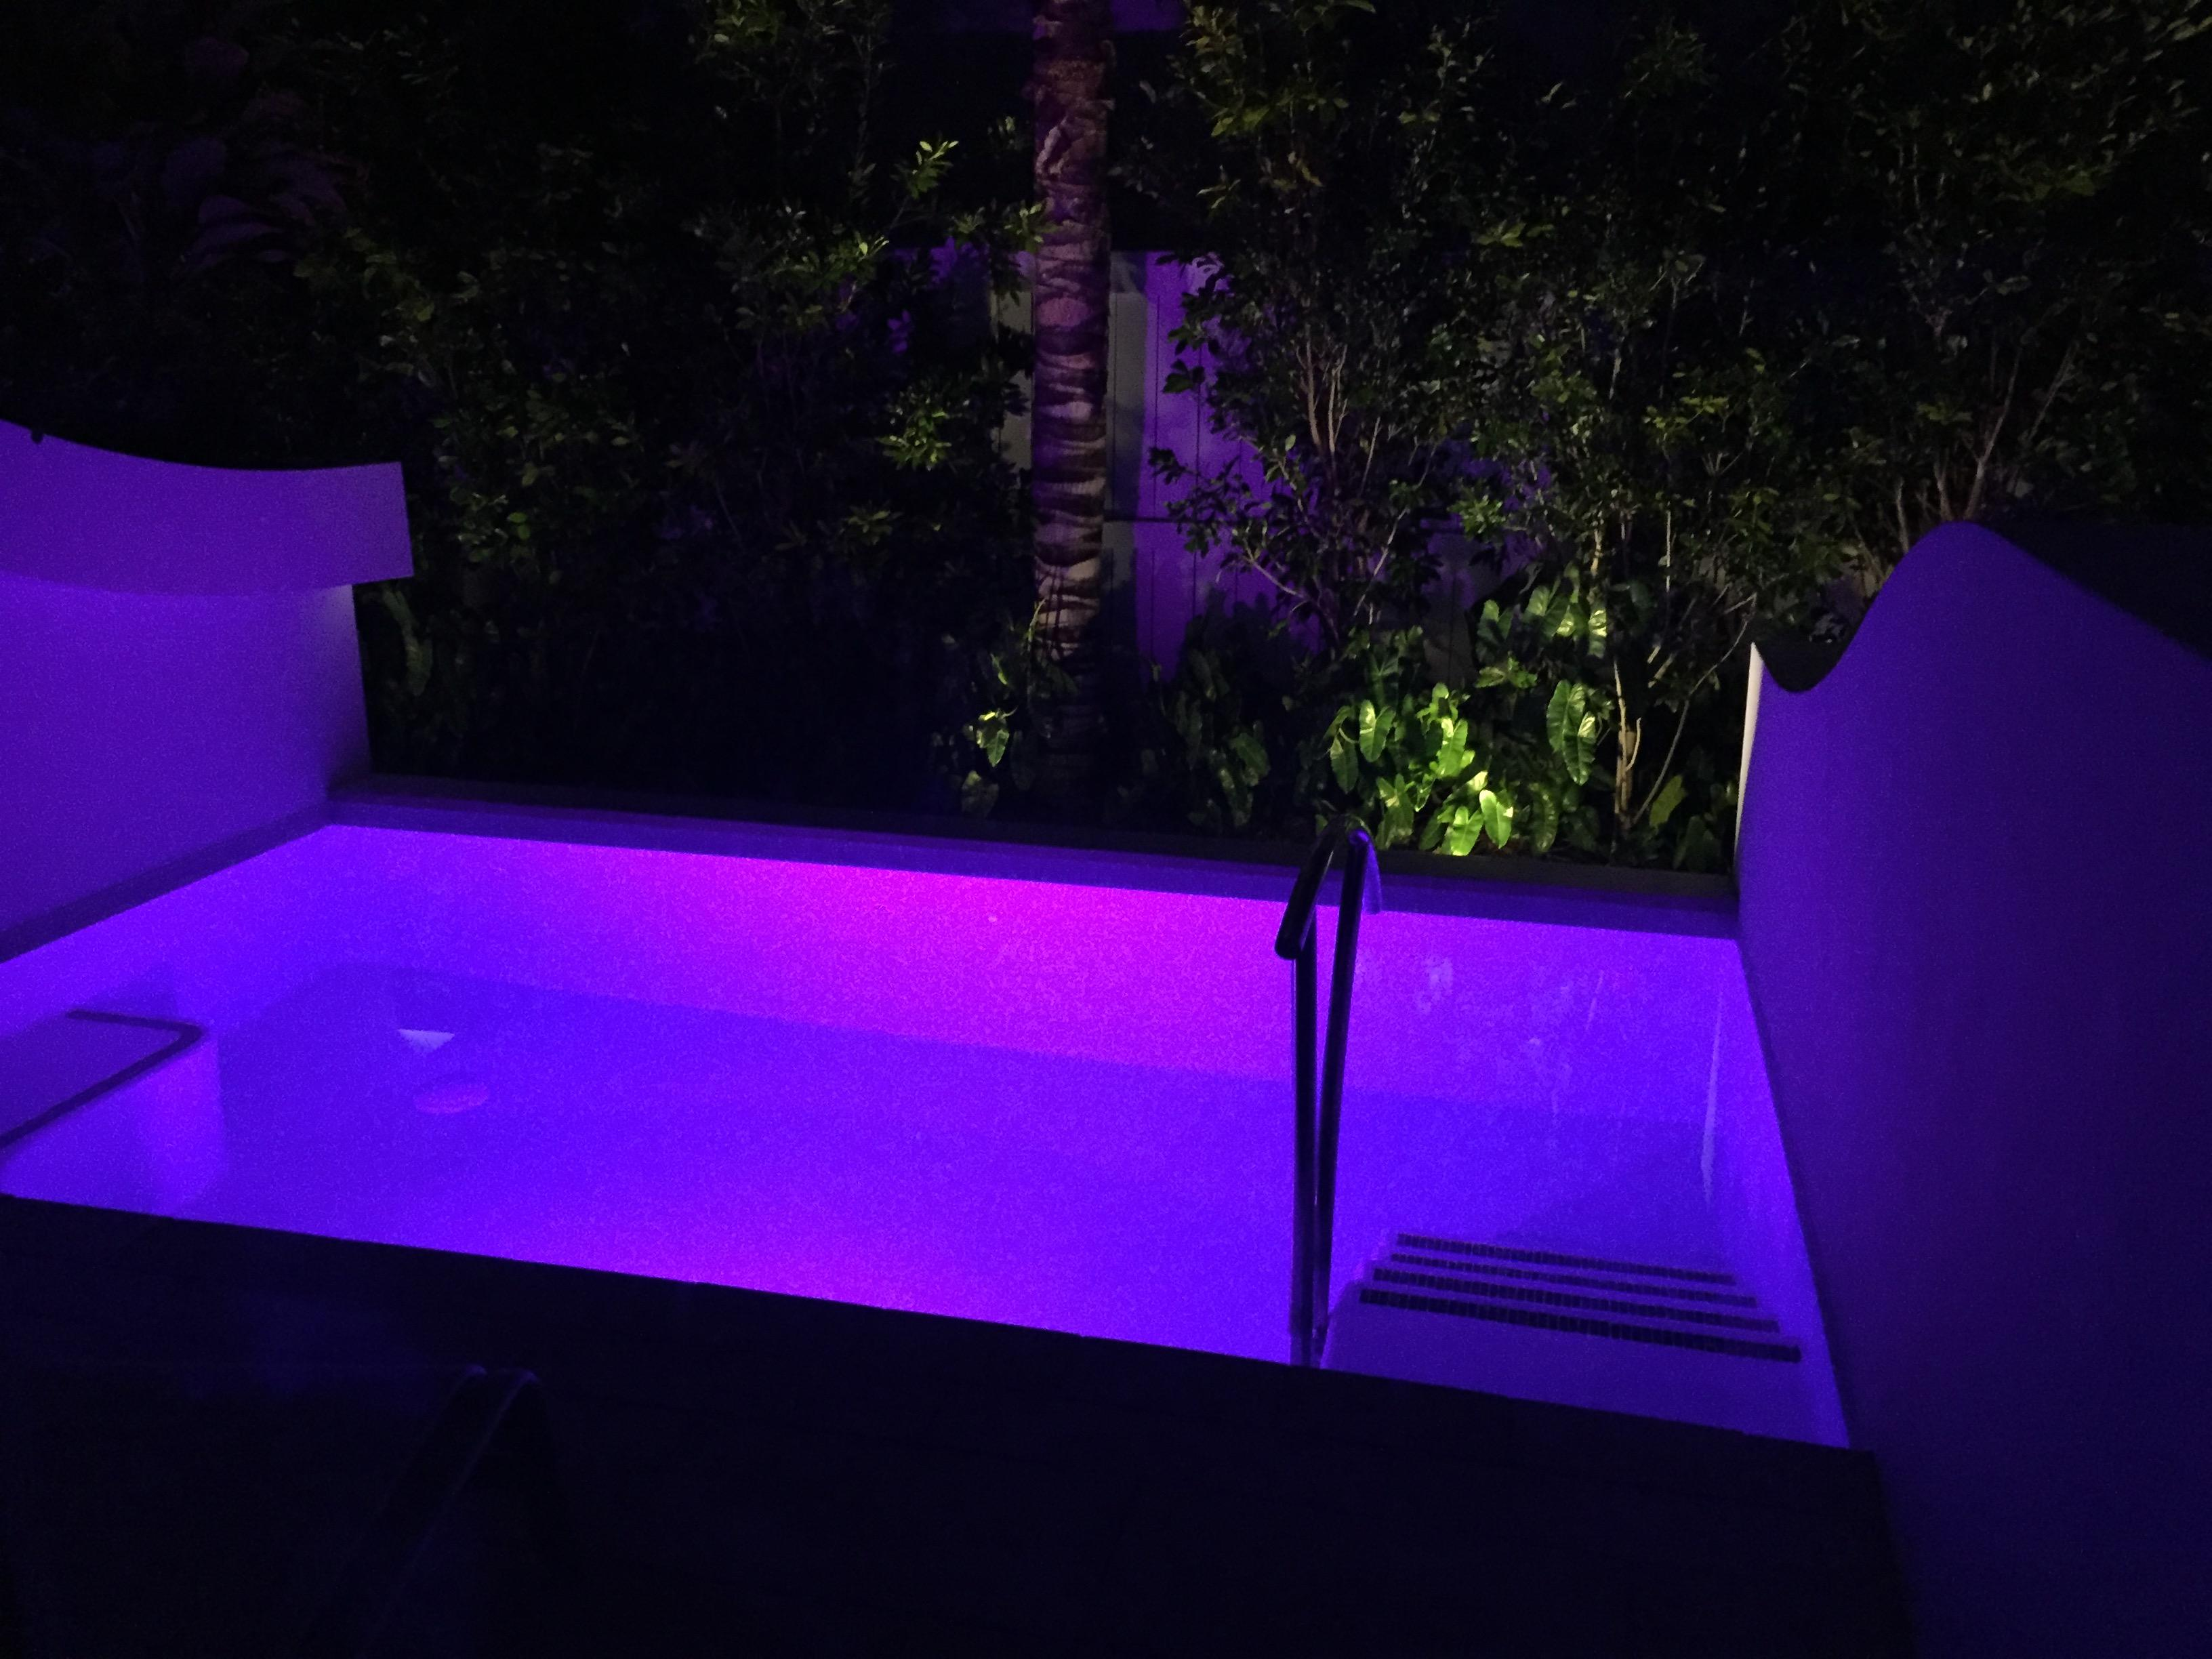 Our private plunge pool at night